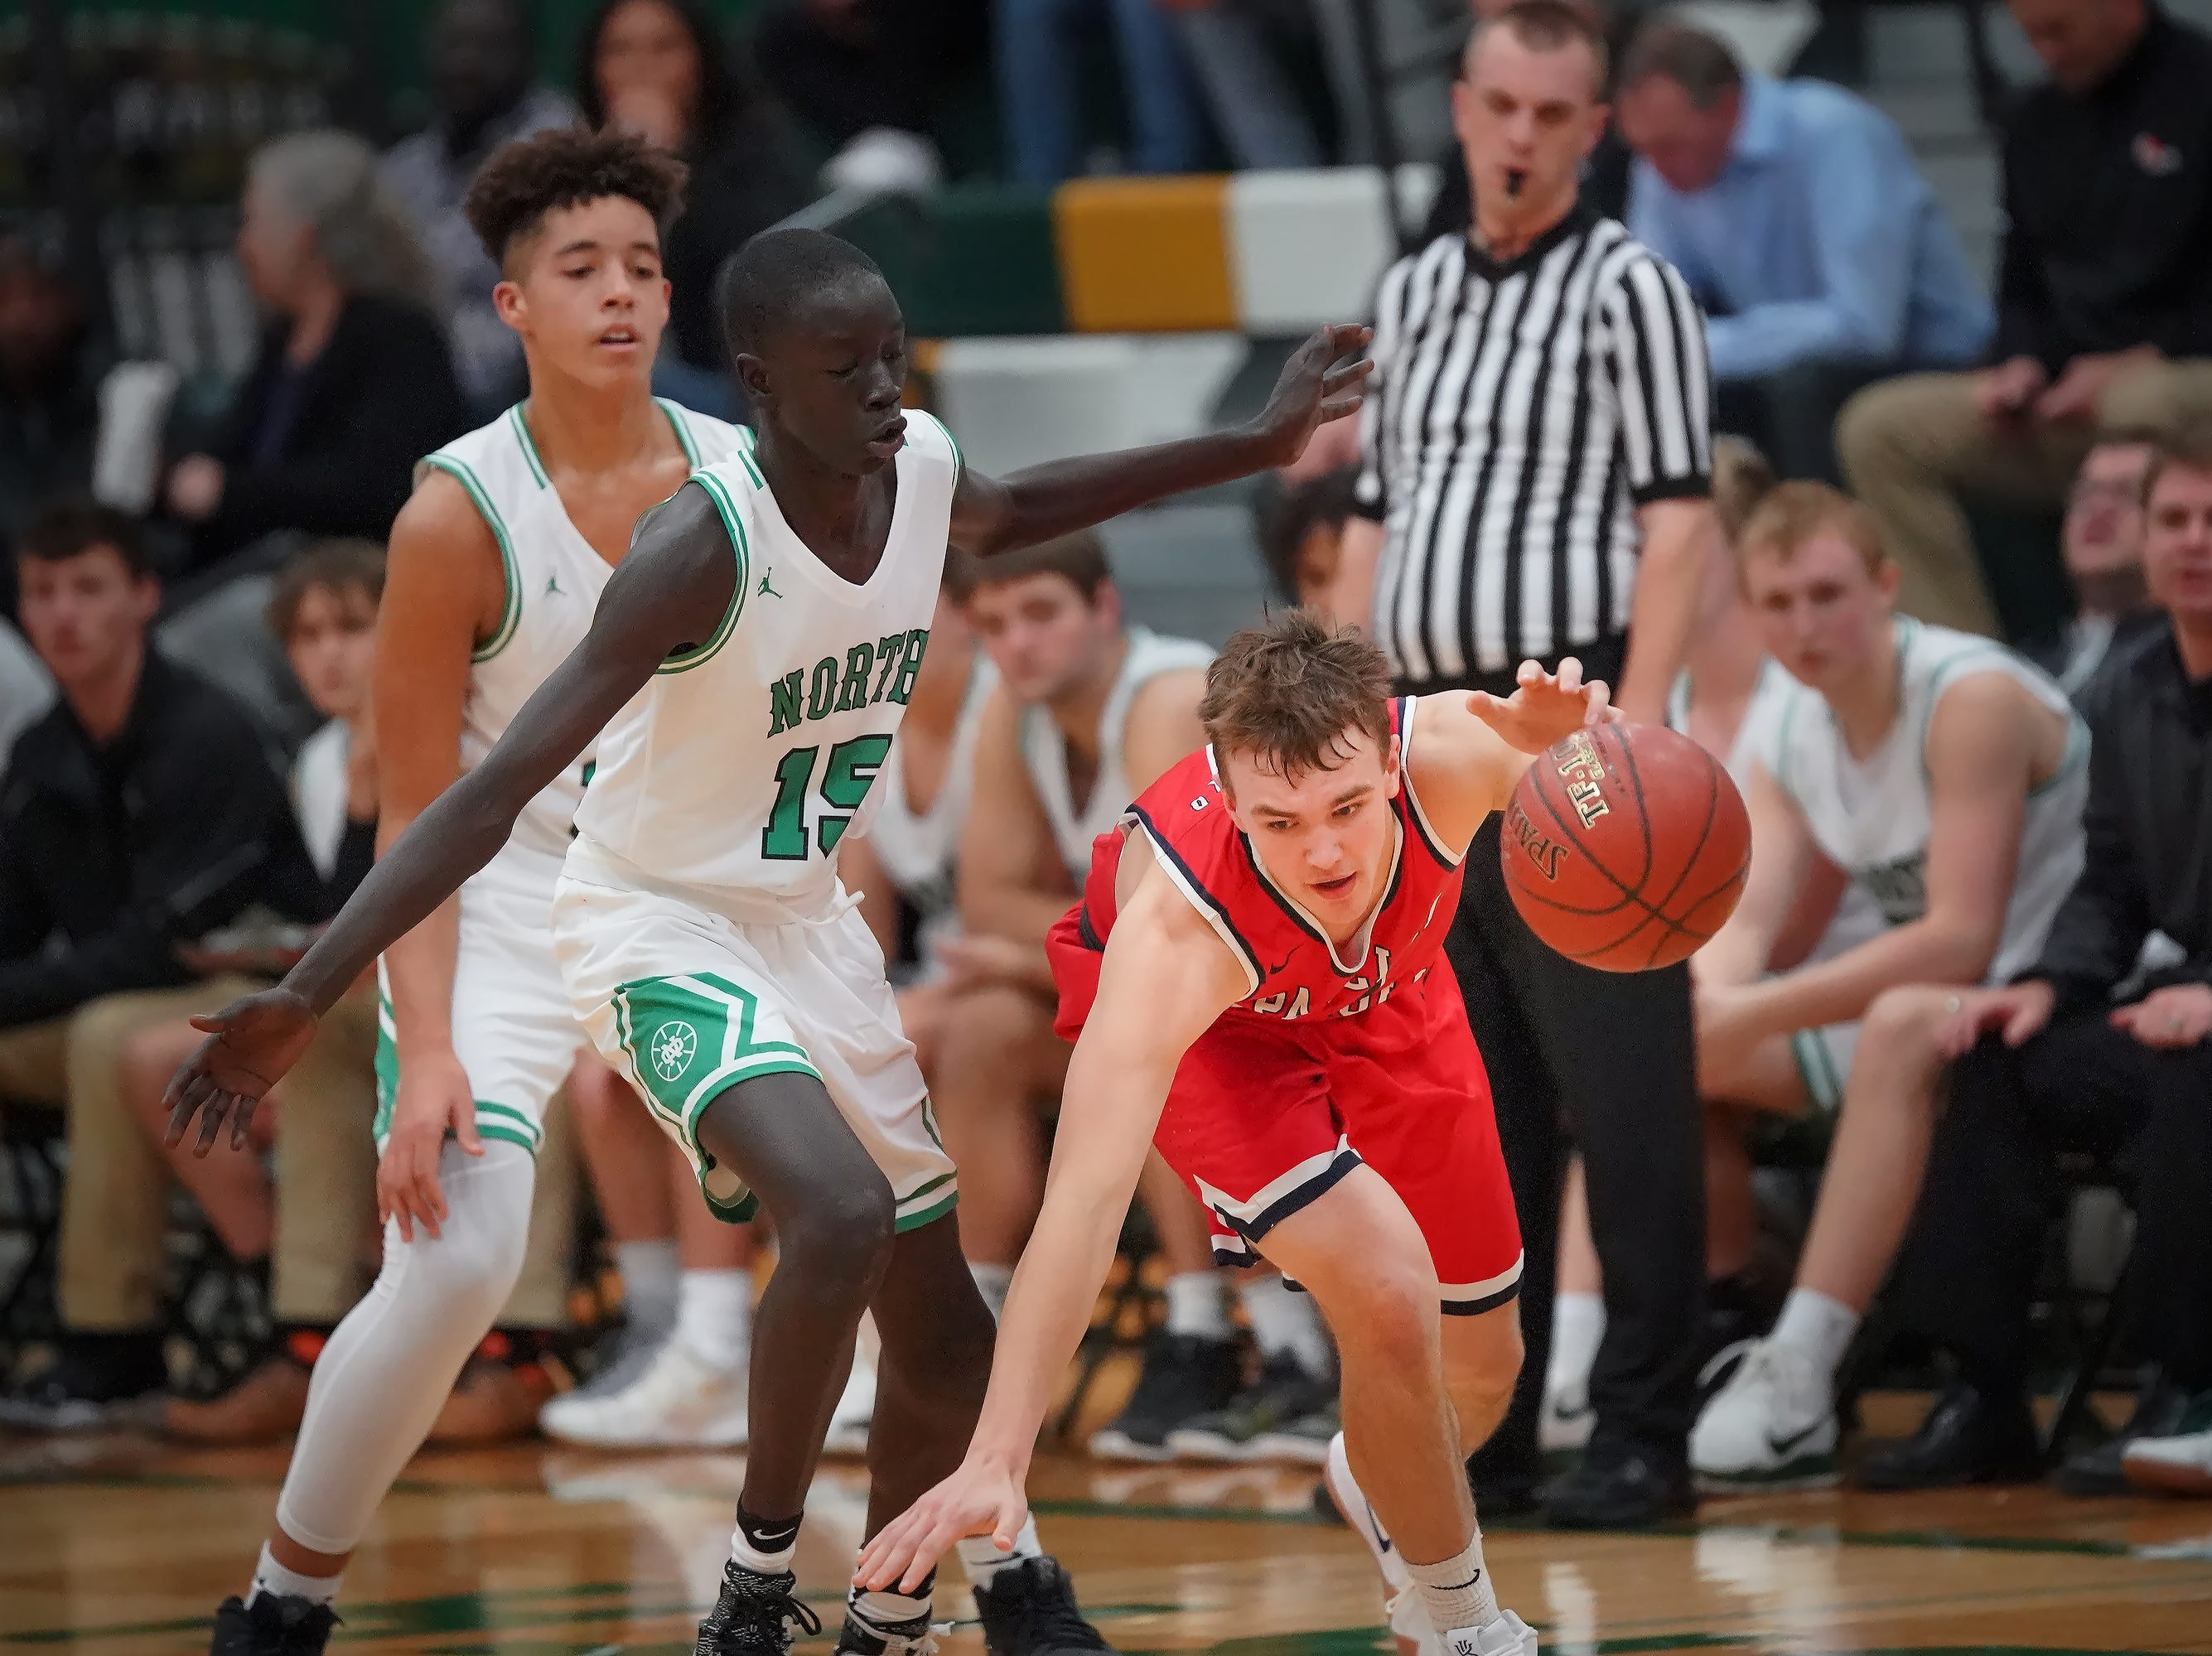 Jonah Peplinski (11) of Pacelli chases a loose ball. The Oshkosh North Spartans hosted the Stevens Point Pacelli Catholic Cardinals in the Friday night game of the Fox River Brewing Thanksgiving Classic Tournament.